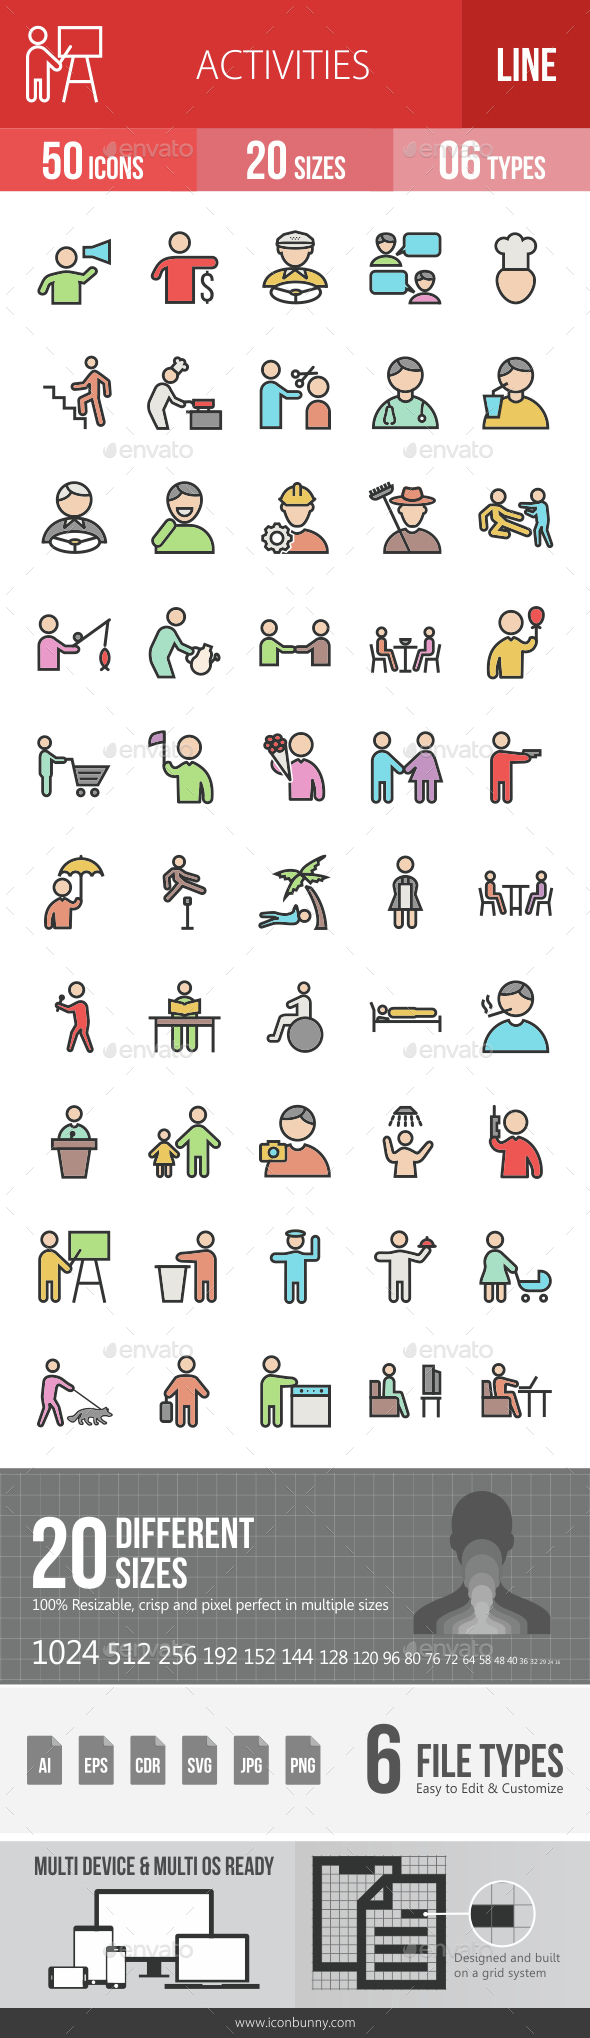 Activities Filled Line Icons - Icons